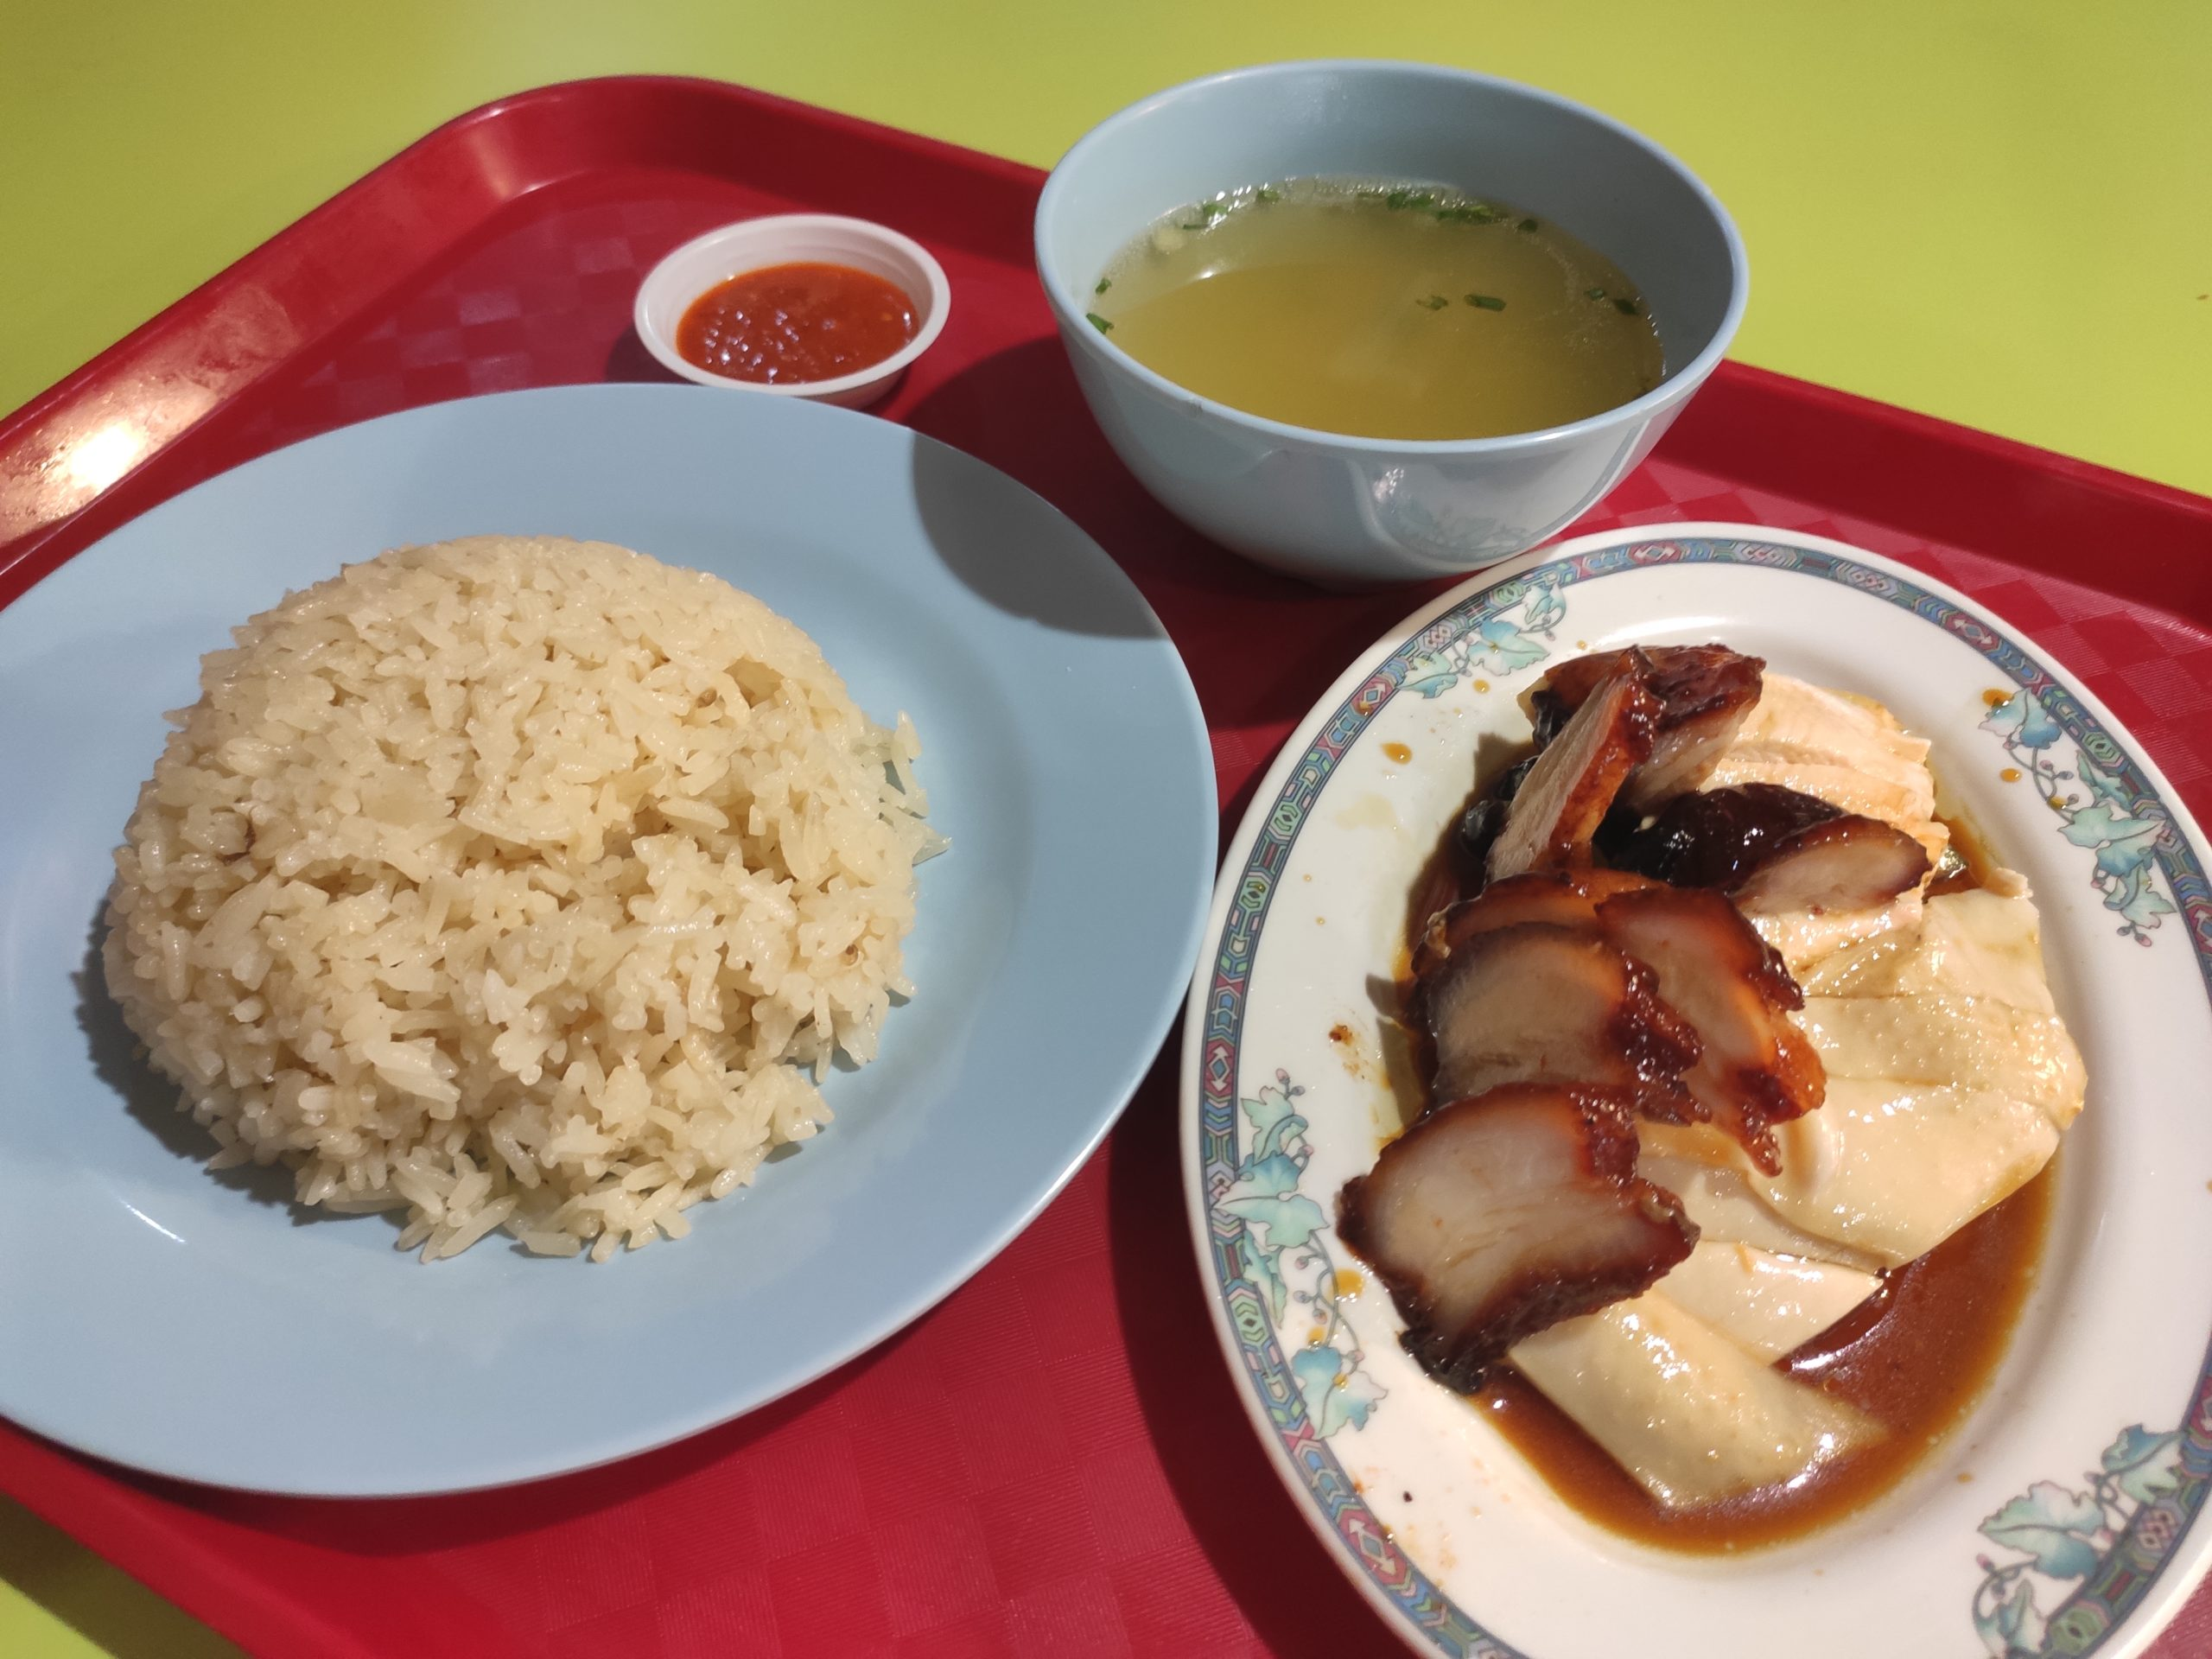 Leong Yeow Famous Waterloo St Chicken Rice: Hainanese Chicken & Char Siew with Rice and Soup